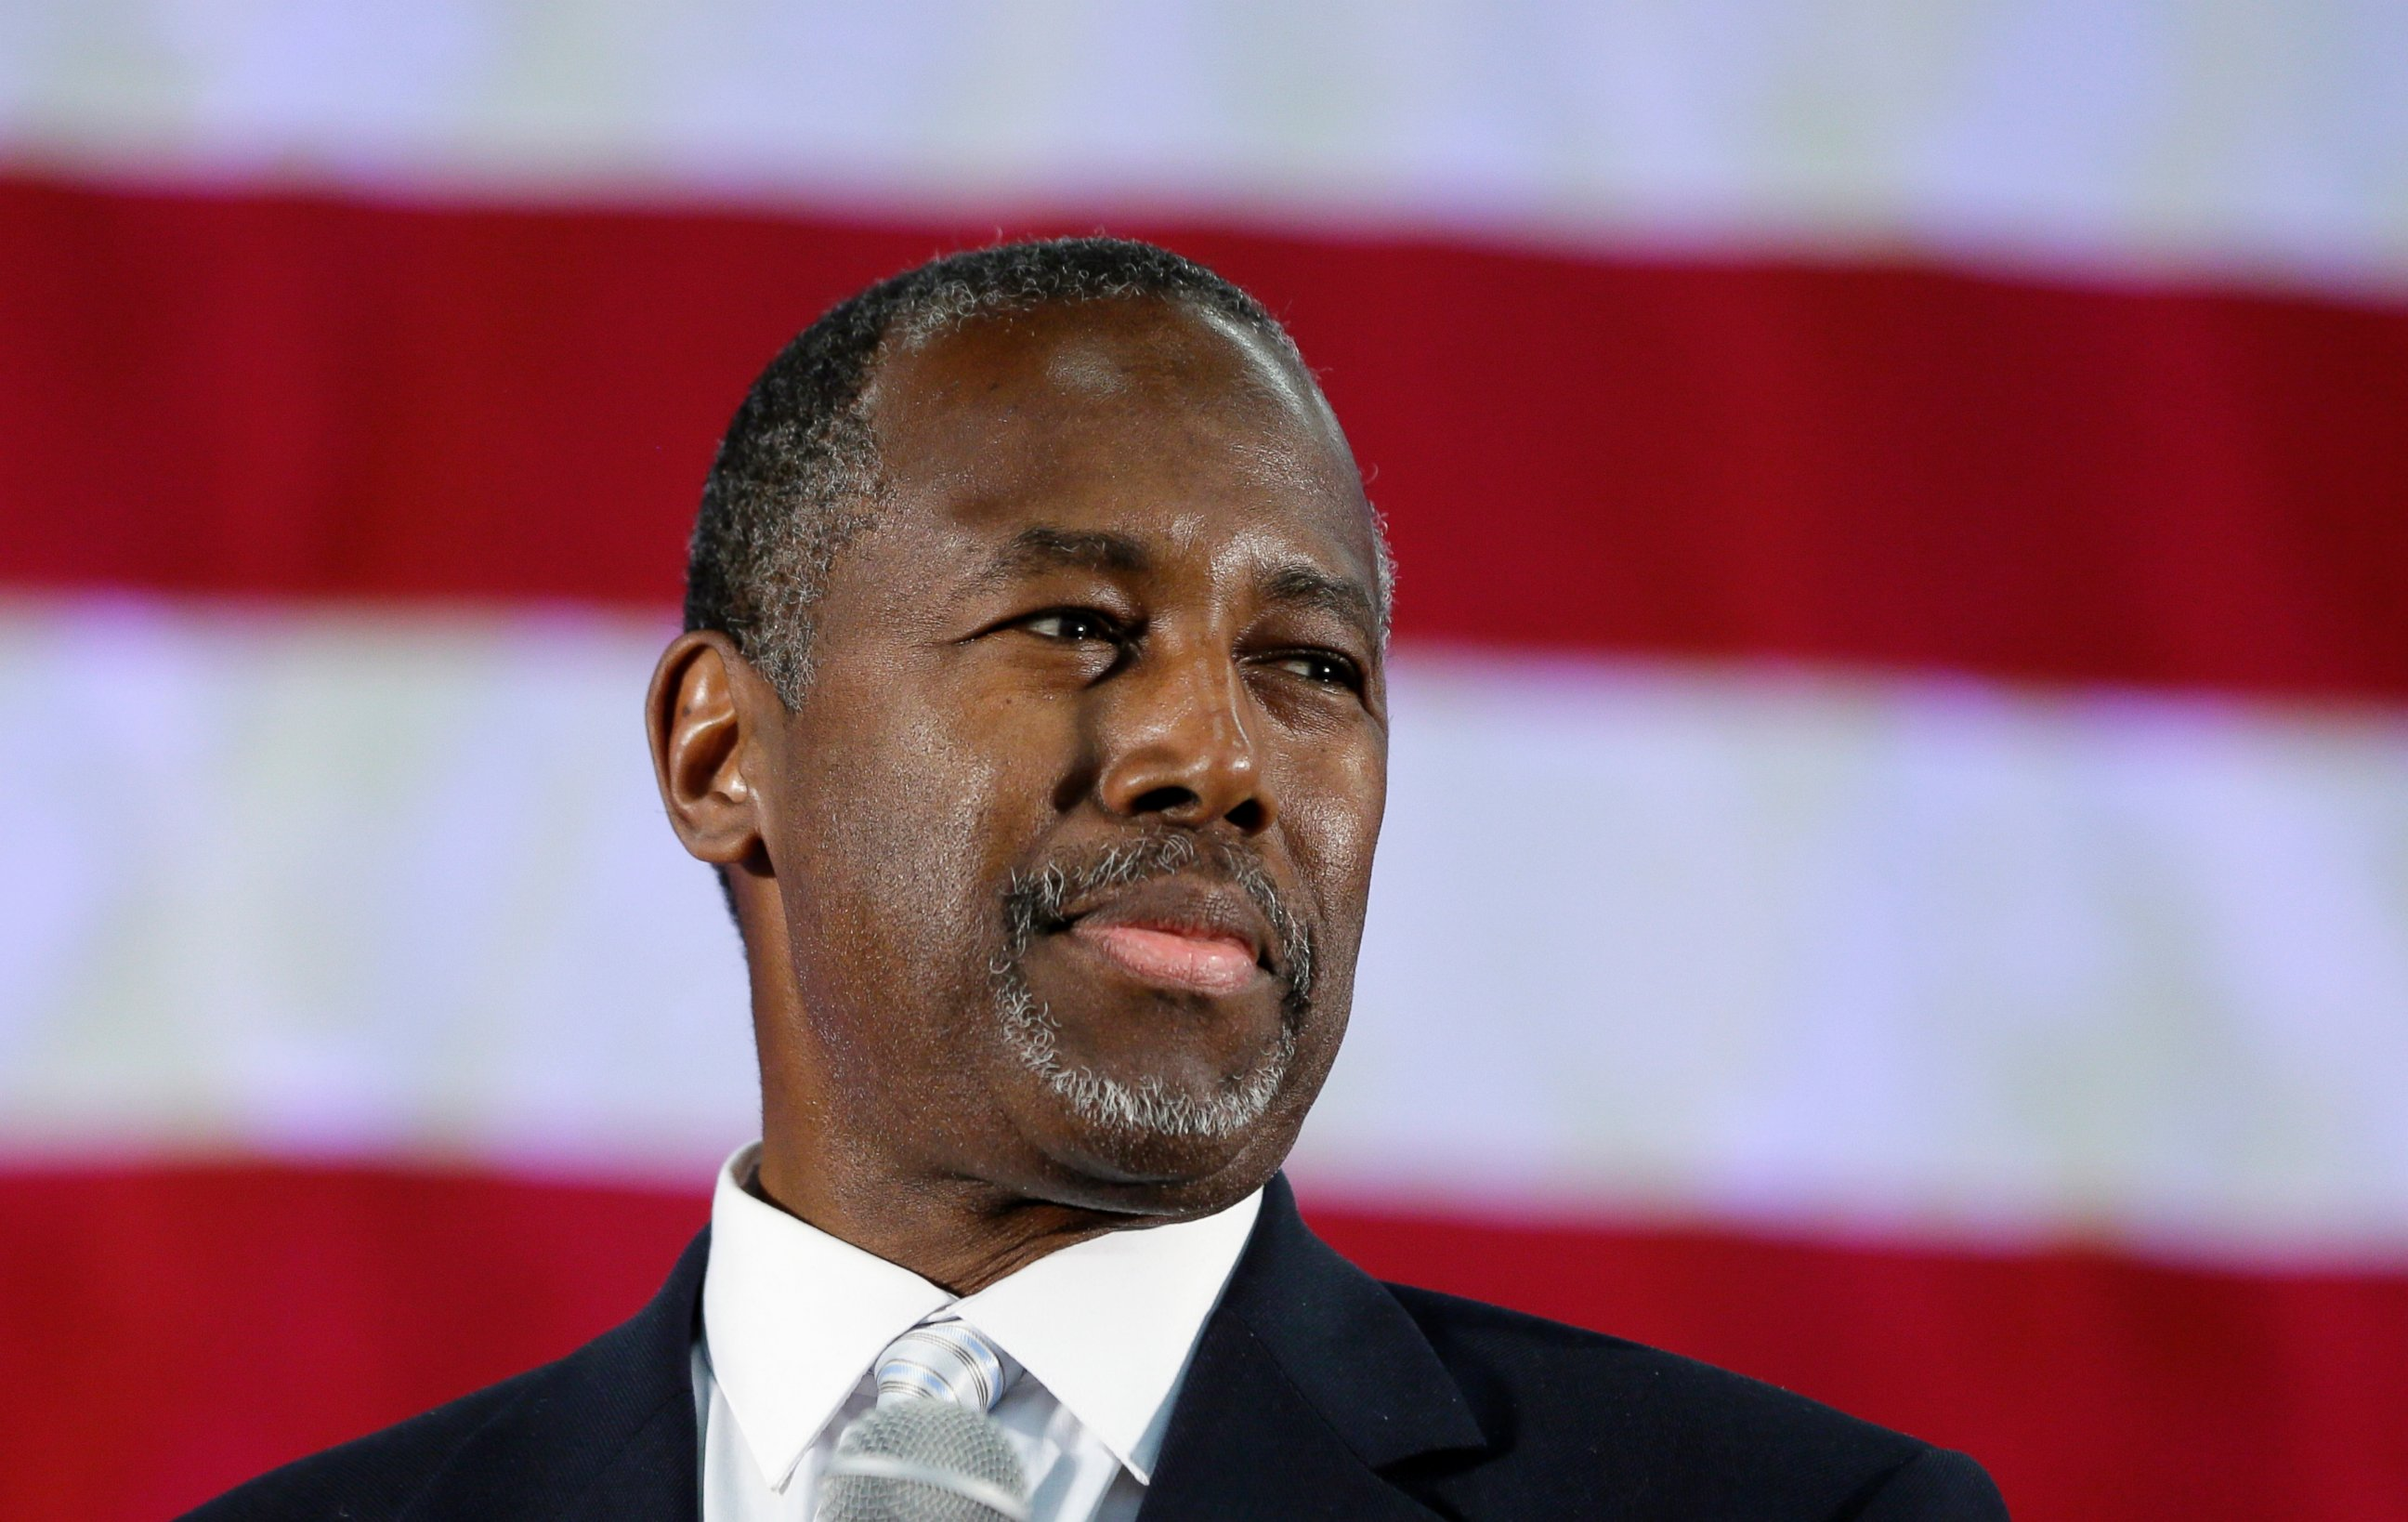 Ben carson photos and images abc news for The carson